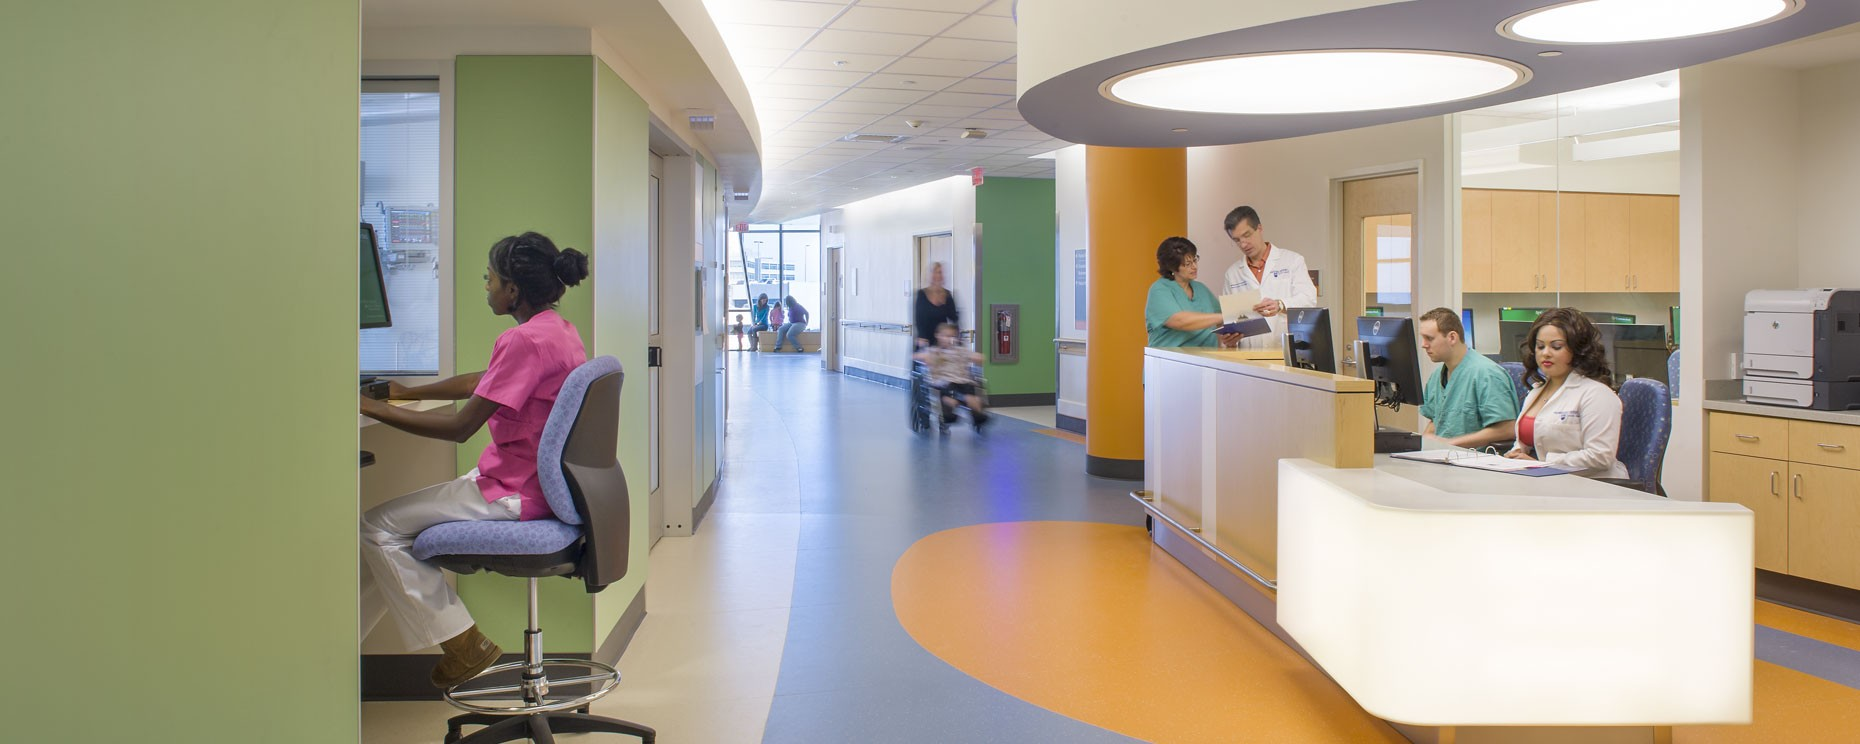 Penn State Milton Hershey Children's Hospital, Hershey, PA. Patient Corridor  Materials: Corian, plastic laminate, wood, Trespa wall panels Architecture: Payette General Contractor: Quandel Group